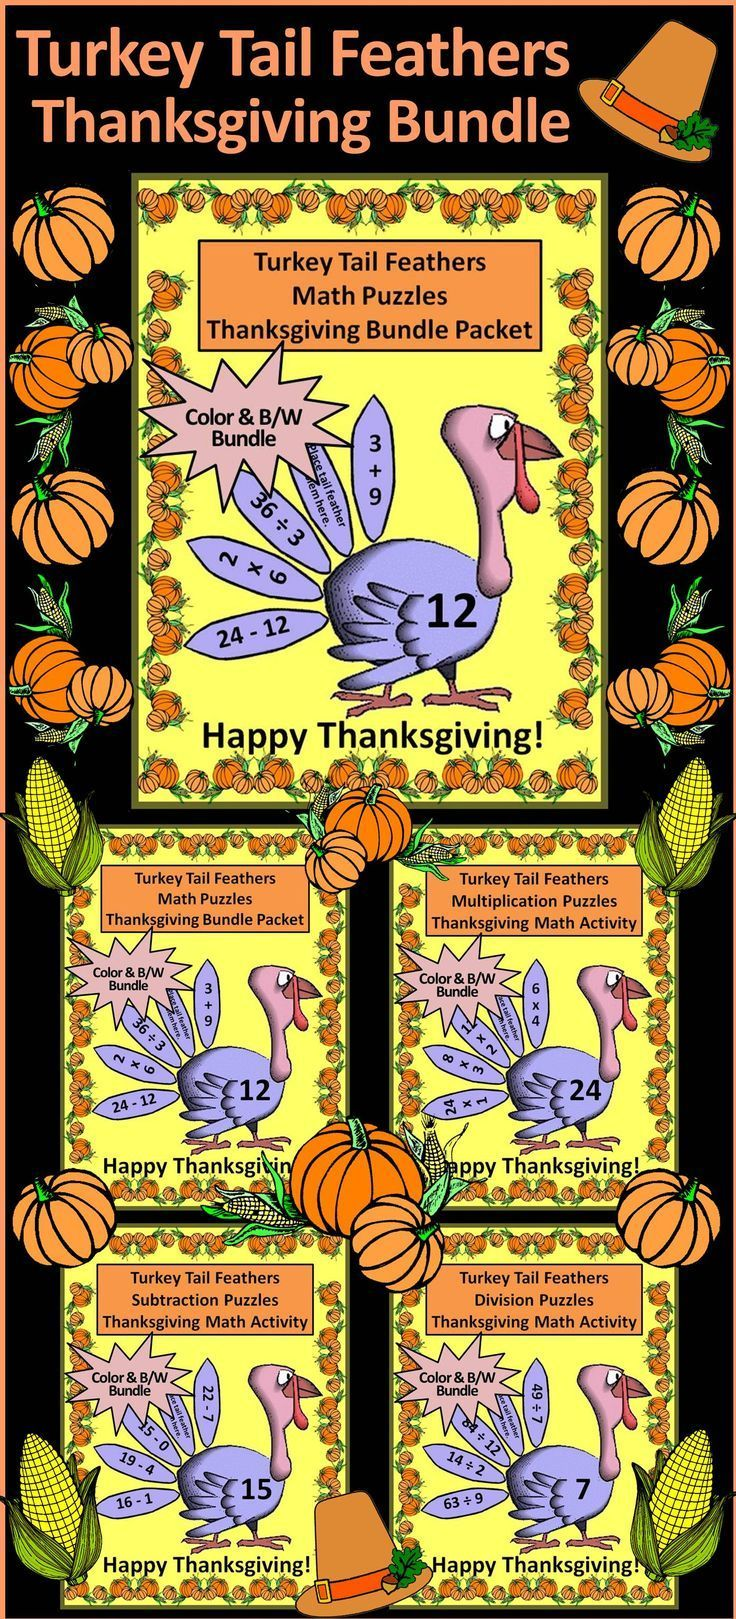 Thanksgiving Games Turkey Tail Feathers Math Puzzles